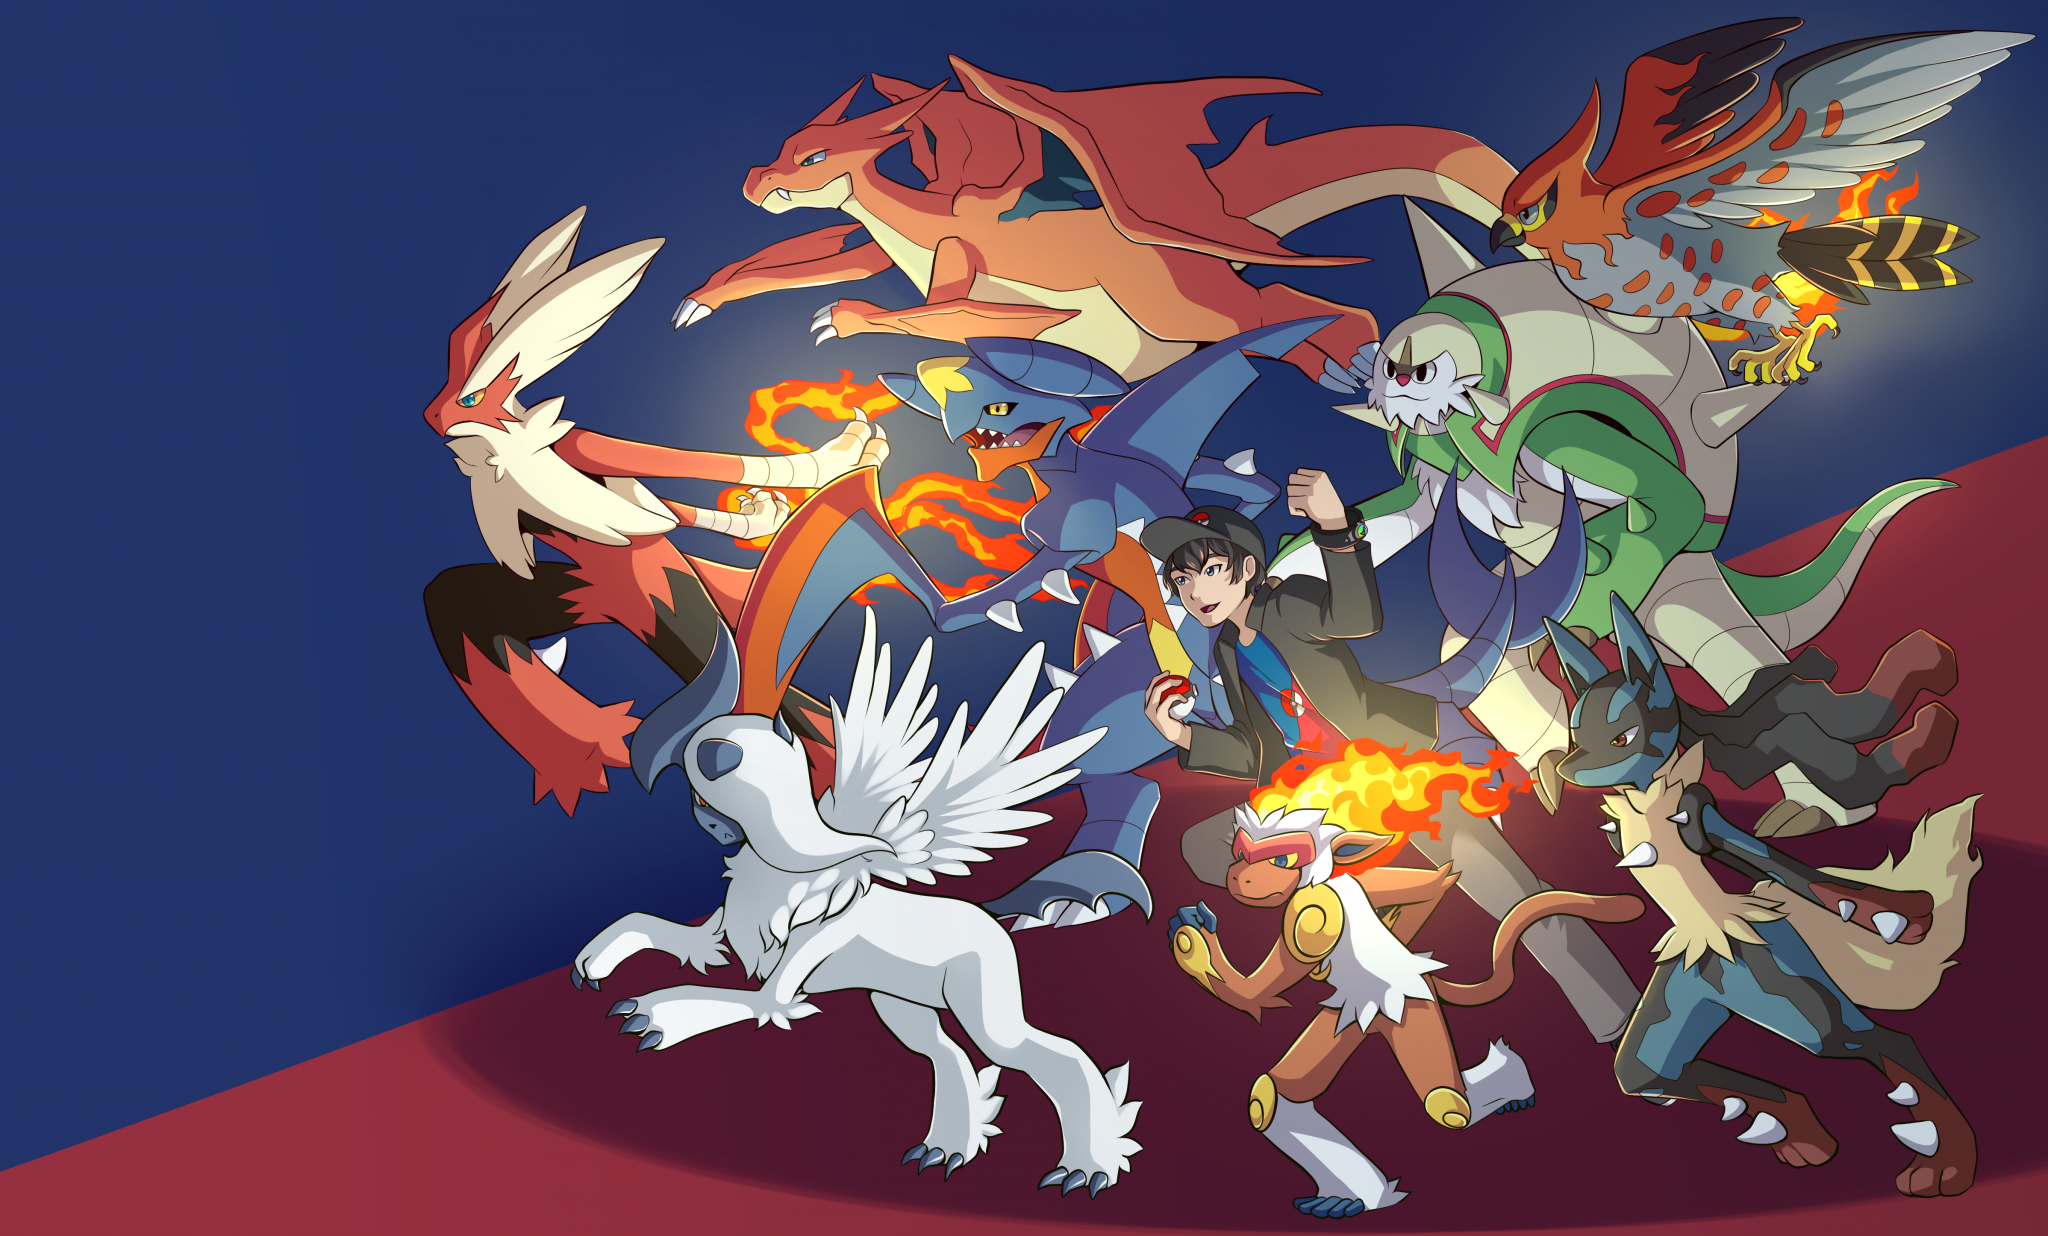 113433-kalos-team-artwork-by-dreamdust